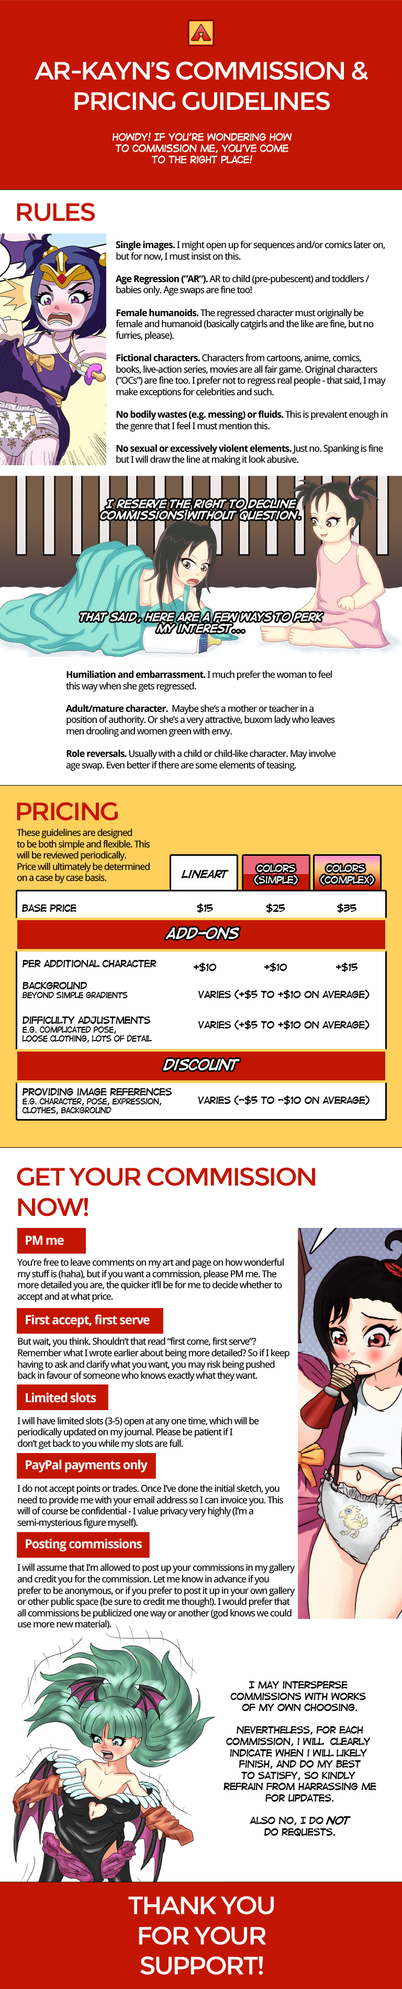 Ar-Kayn's Commission and Pricing Guidelines by Ar-Kayn